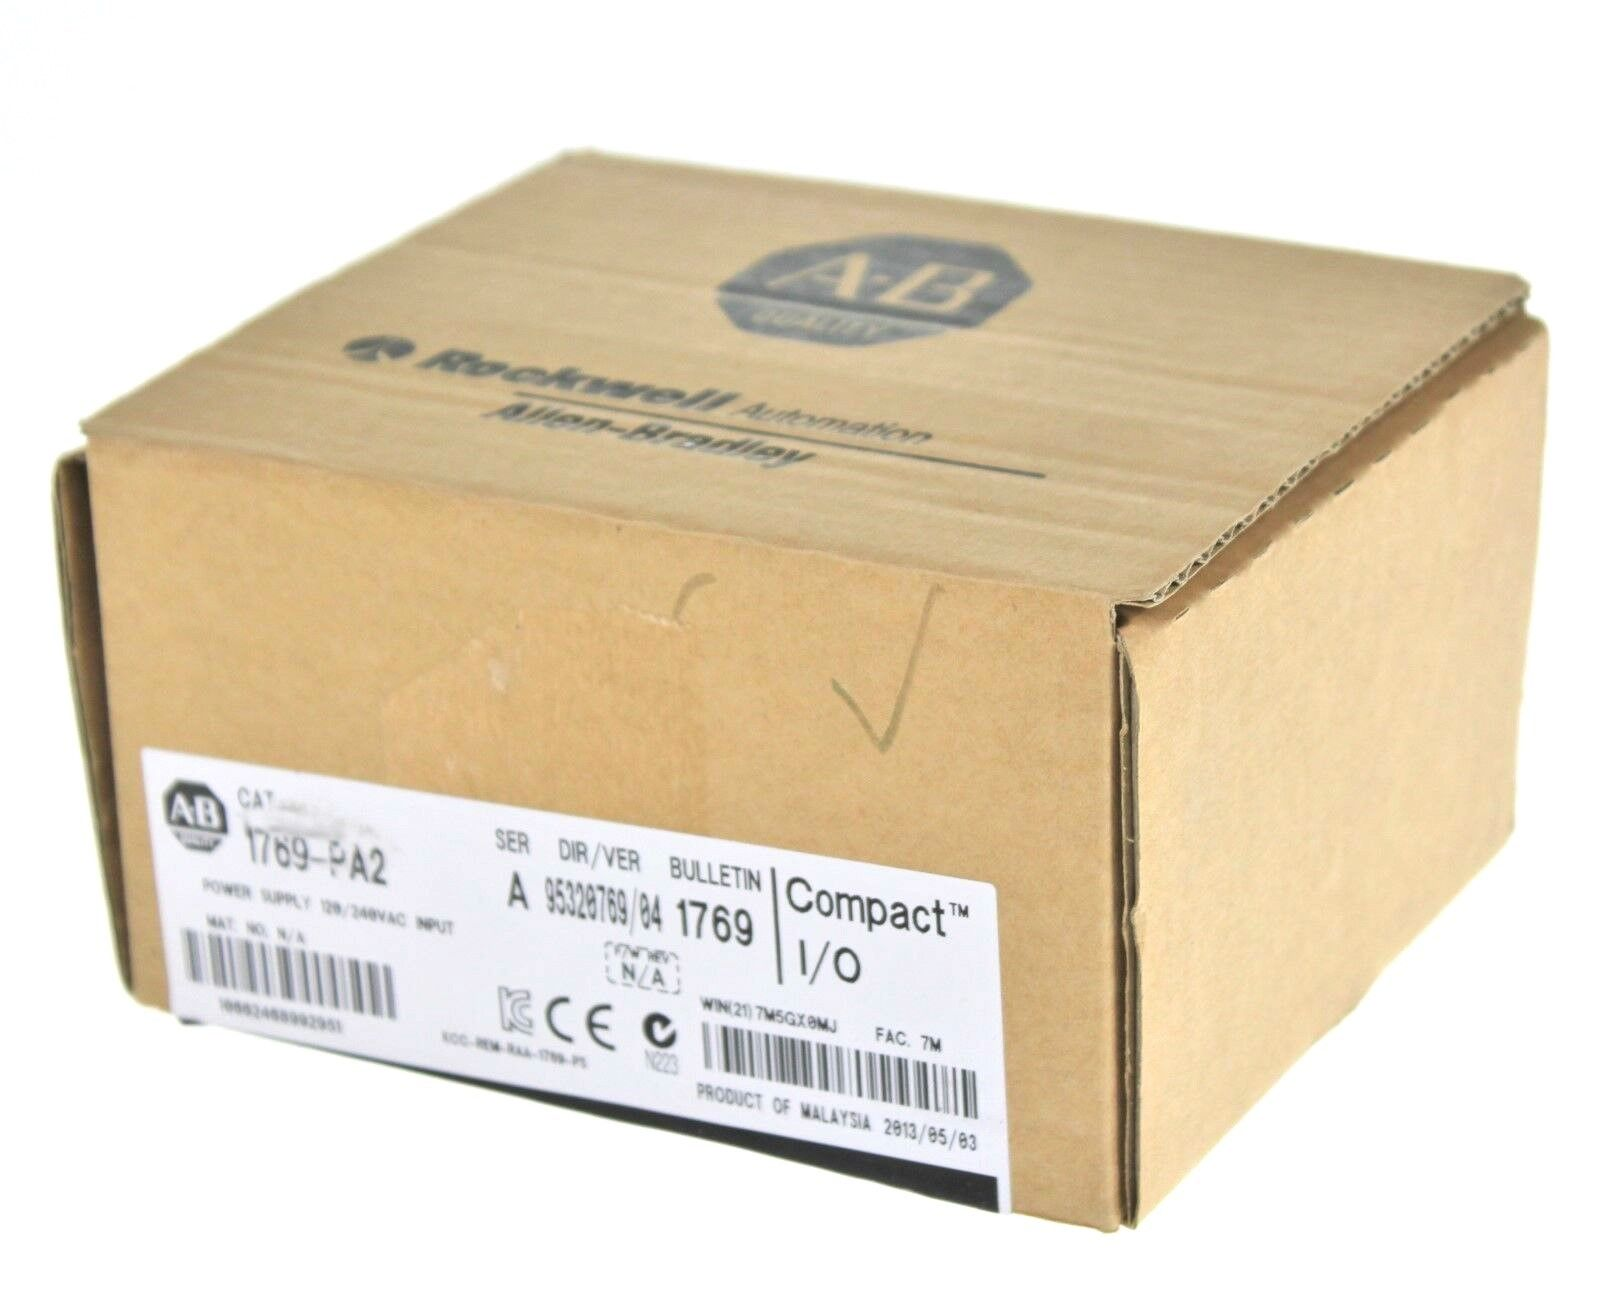 New Allen Bradley 1769-PA2 /A Compact I/O AC Power Supply